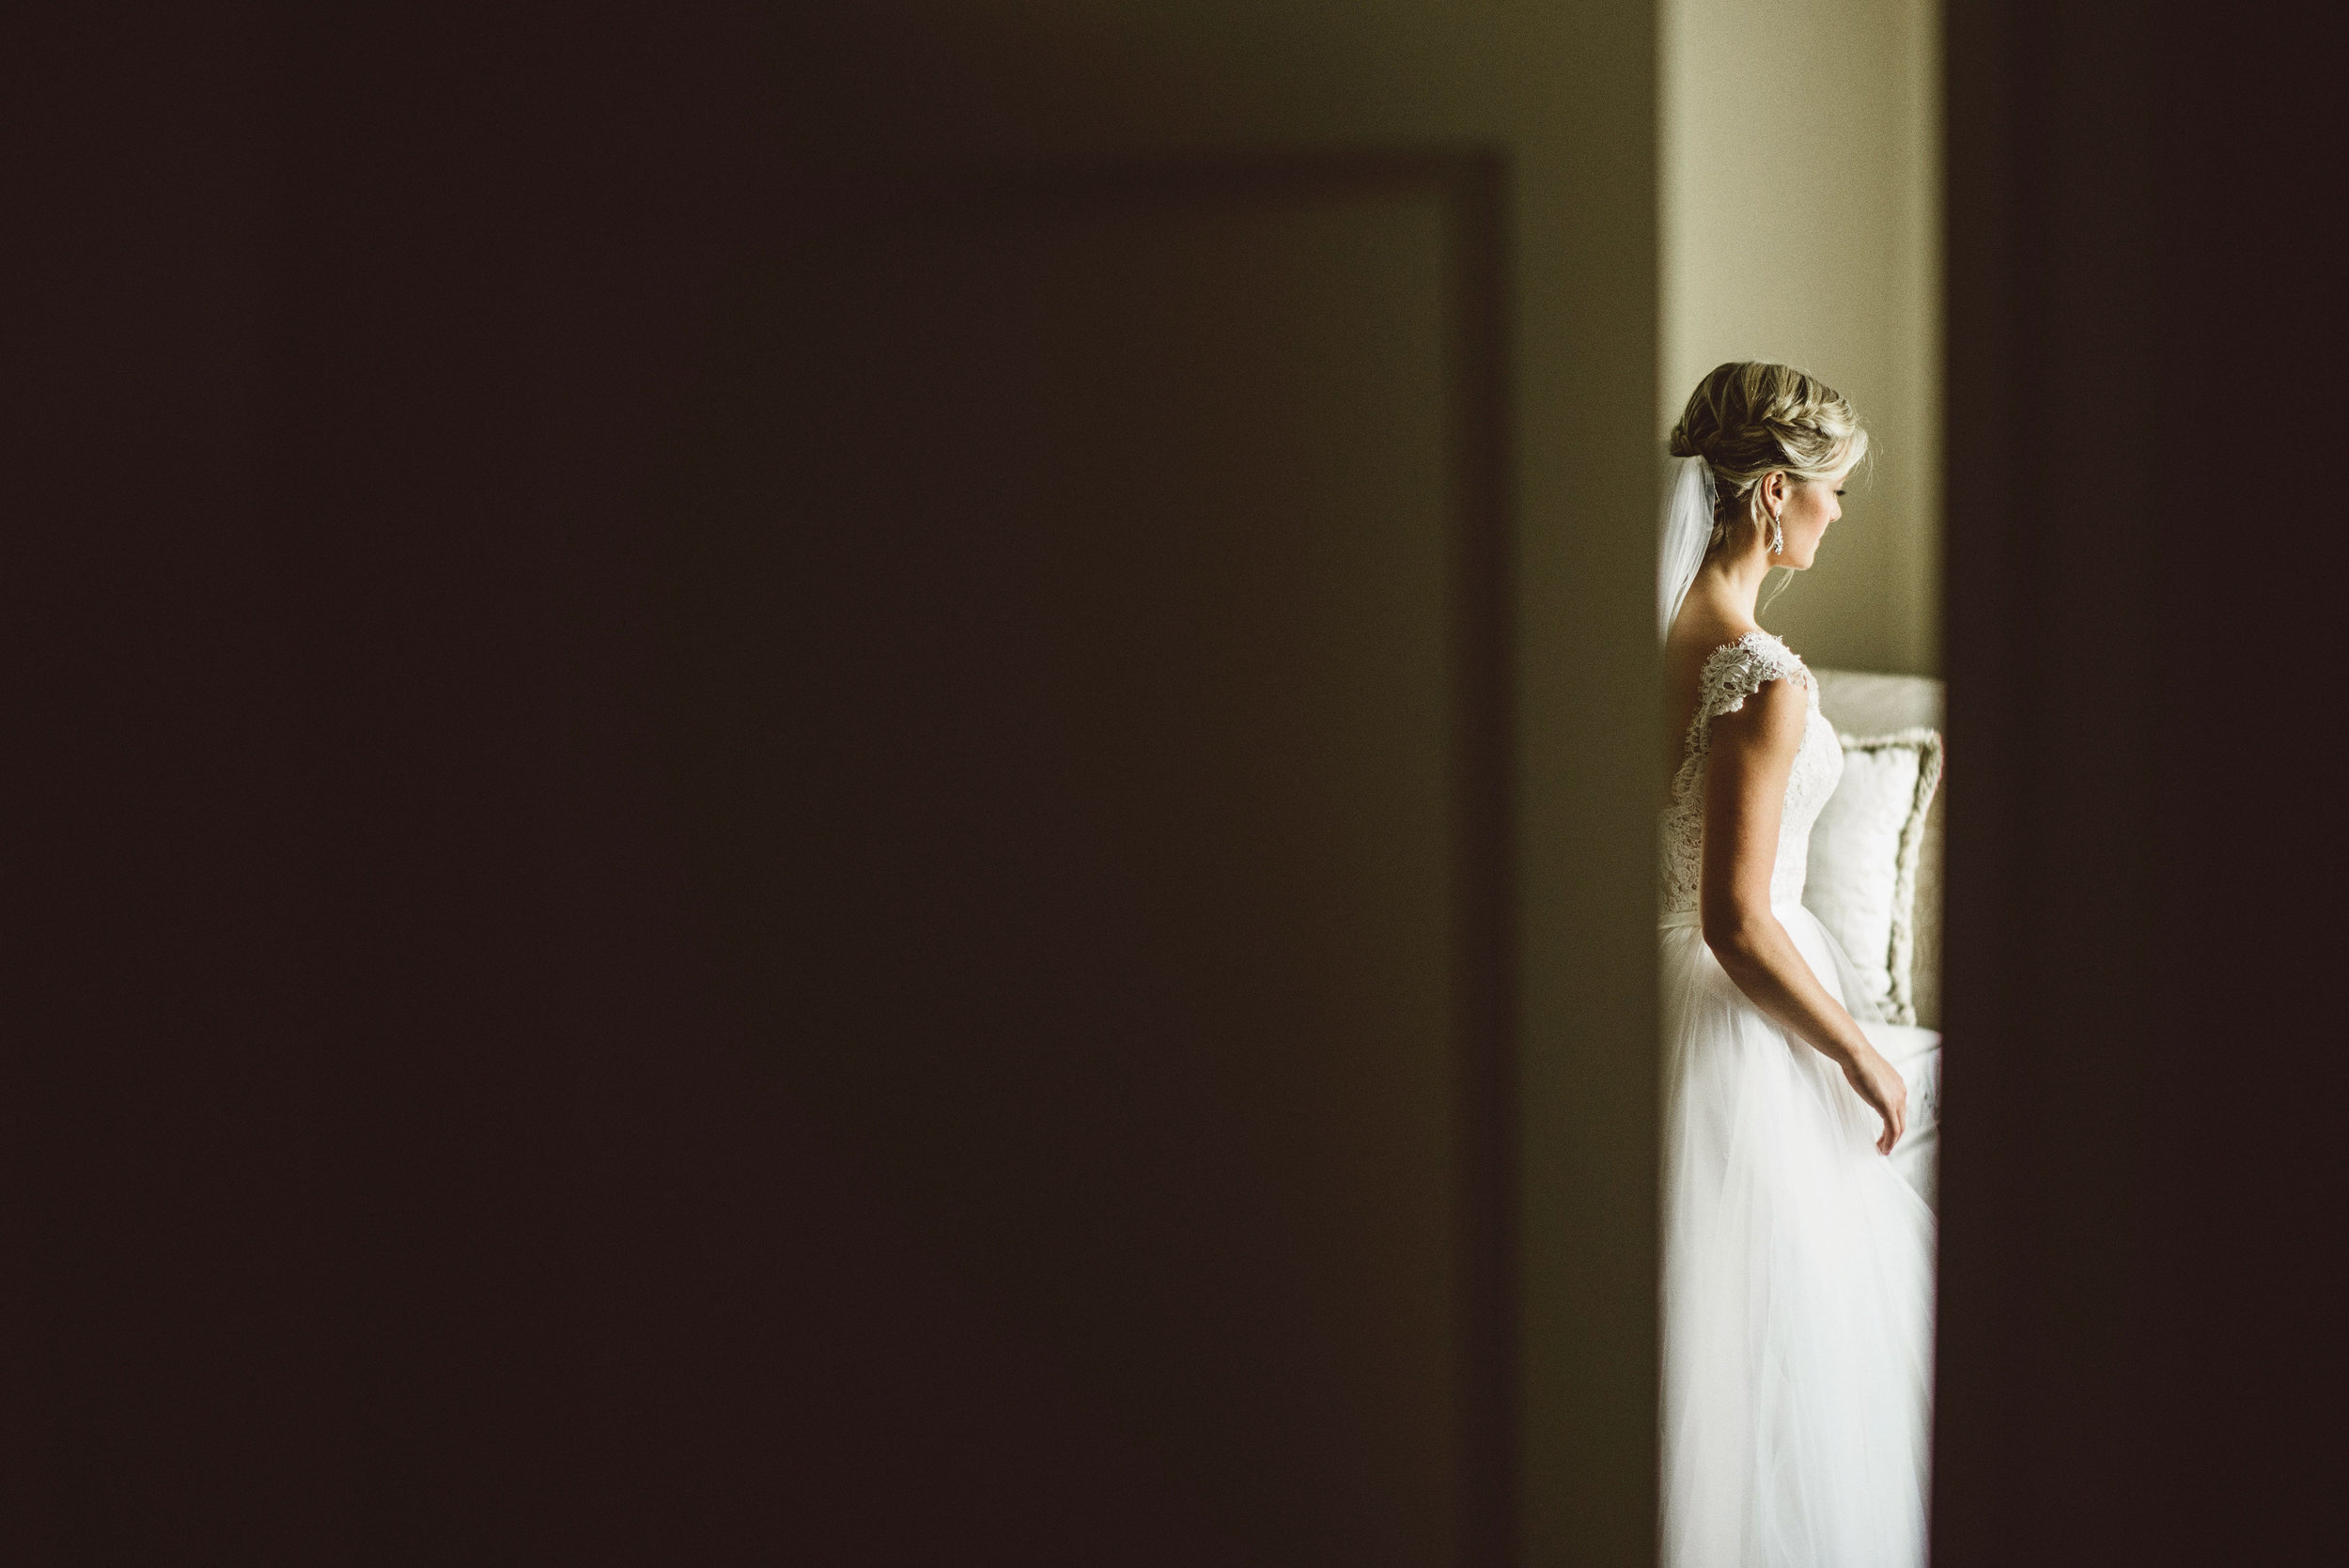 maura_david_wedding_portraits_by_lucas_botz_photography_0039